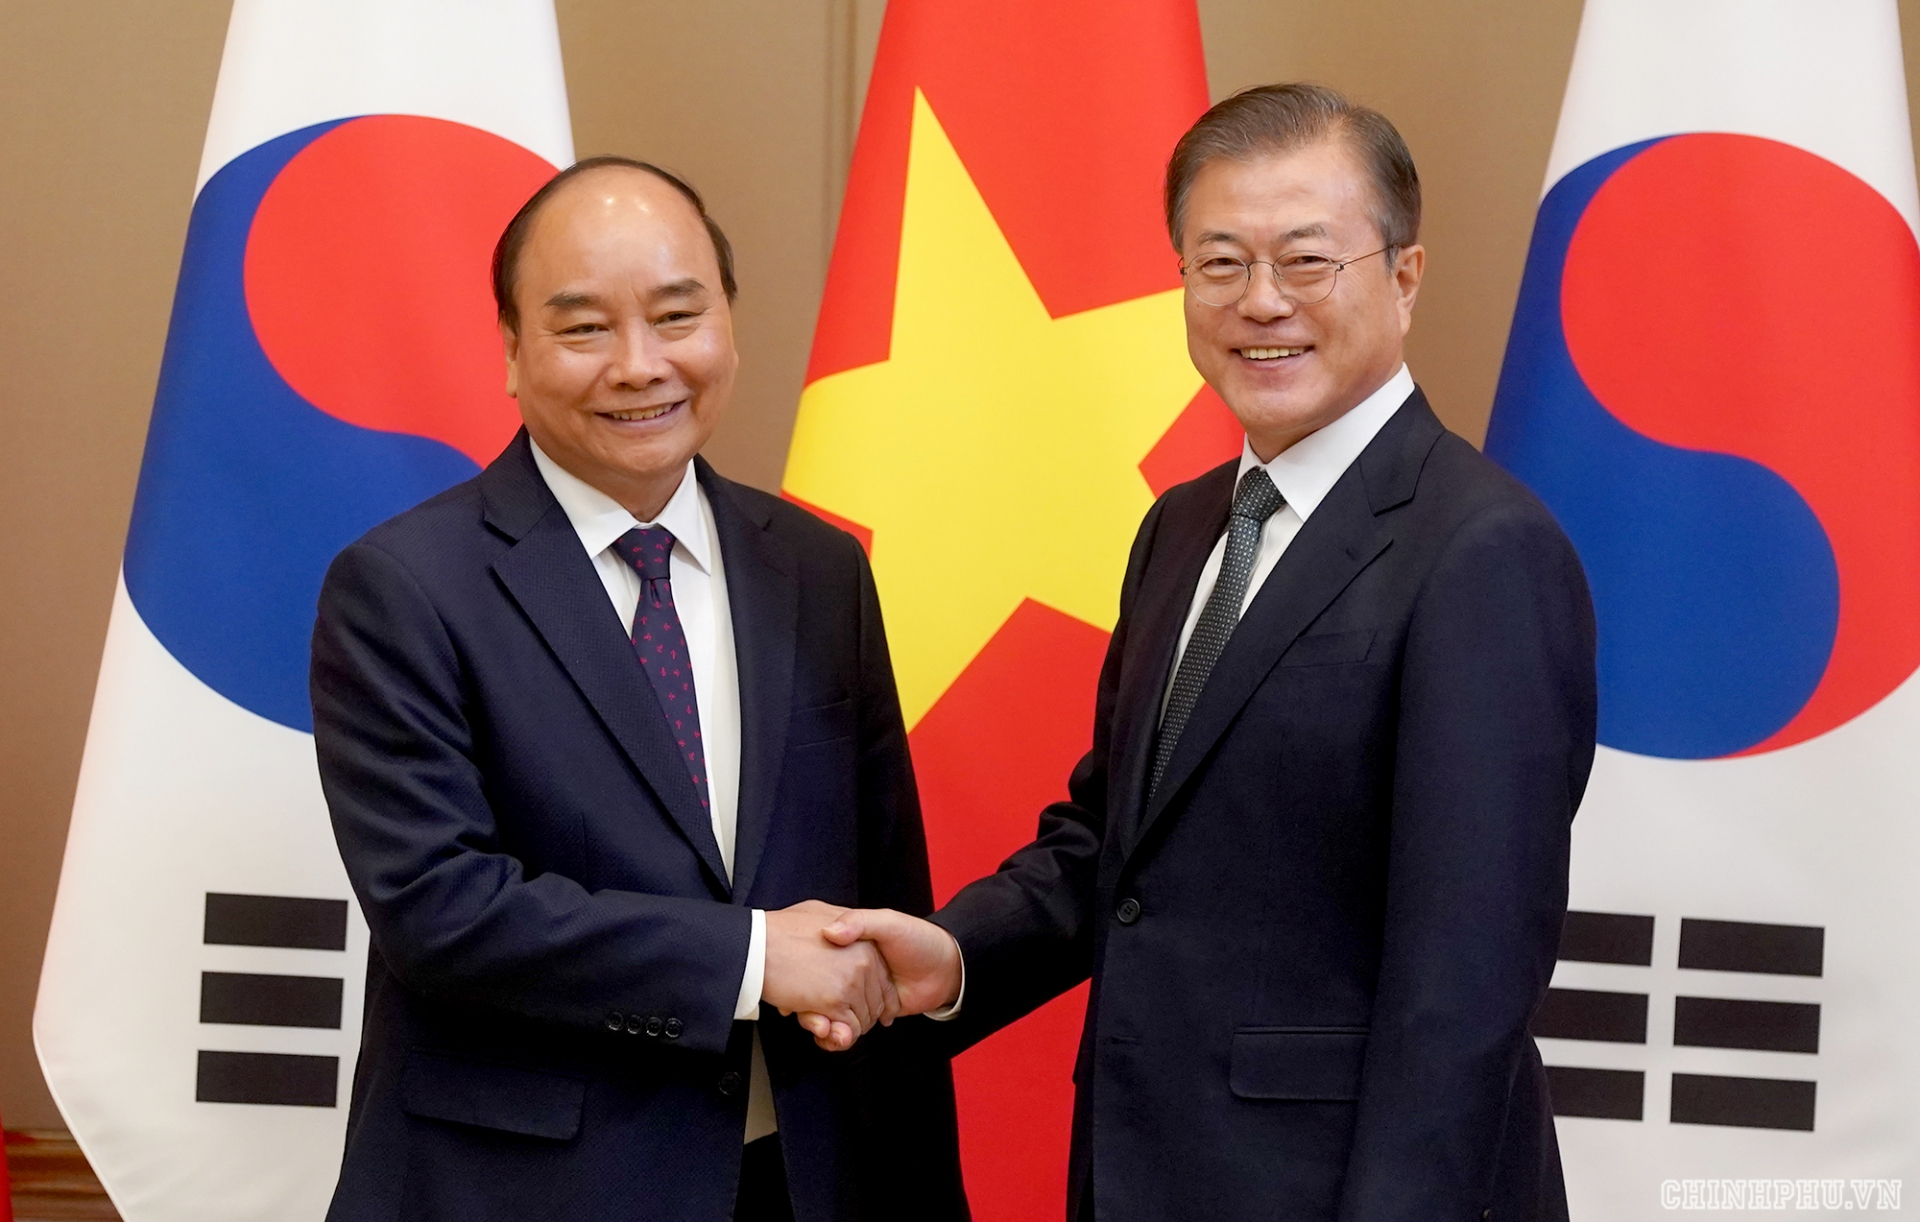 vietnam well responds to covid 19 pandemic says korean president